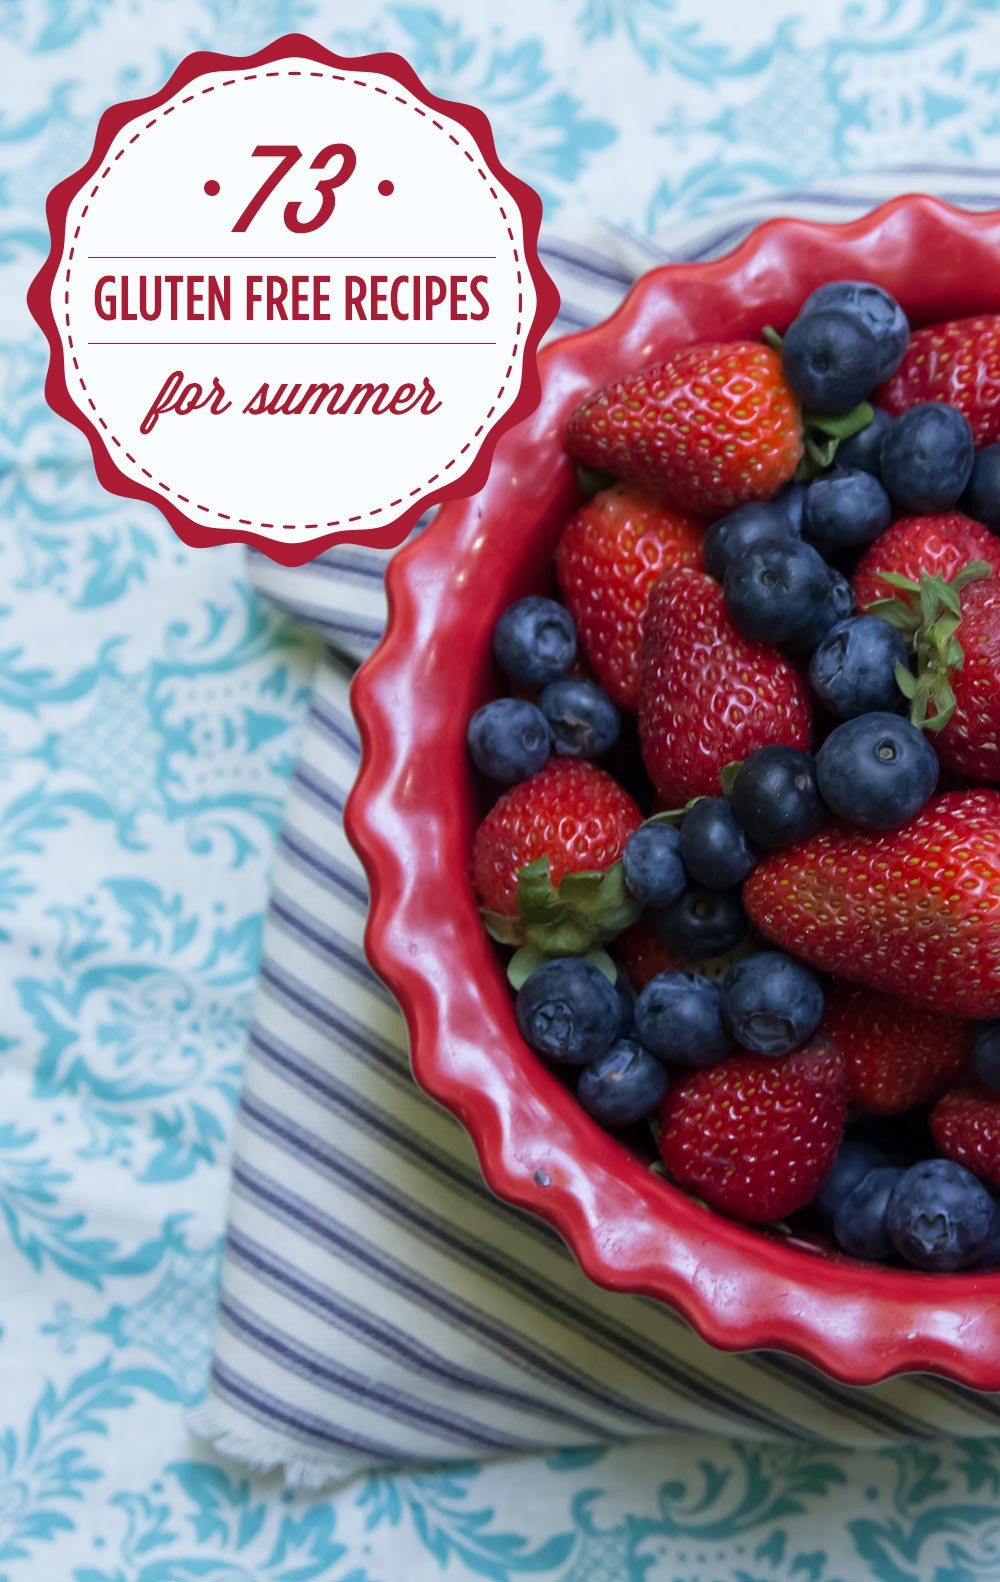 Gluten Free Camping Recipes  73 Gluten Free Recipes for Summer The Tomato Tart